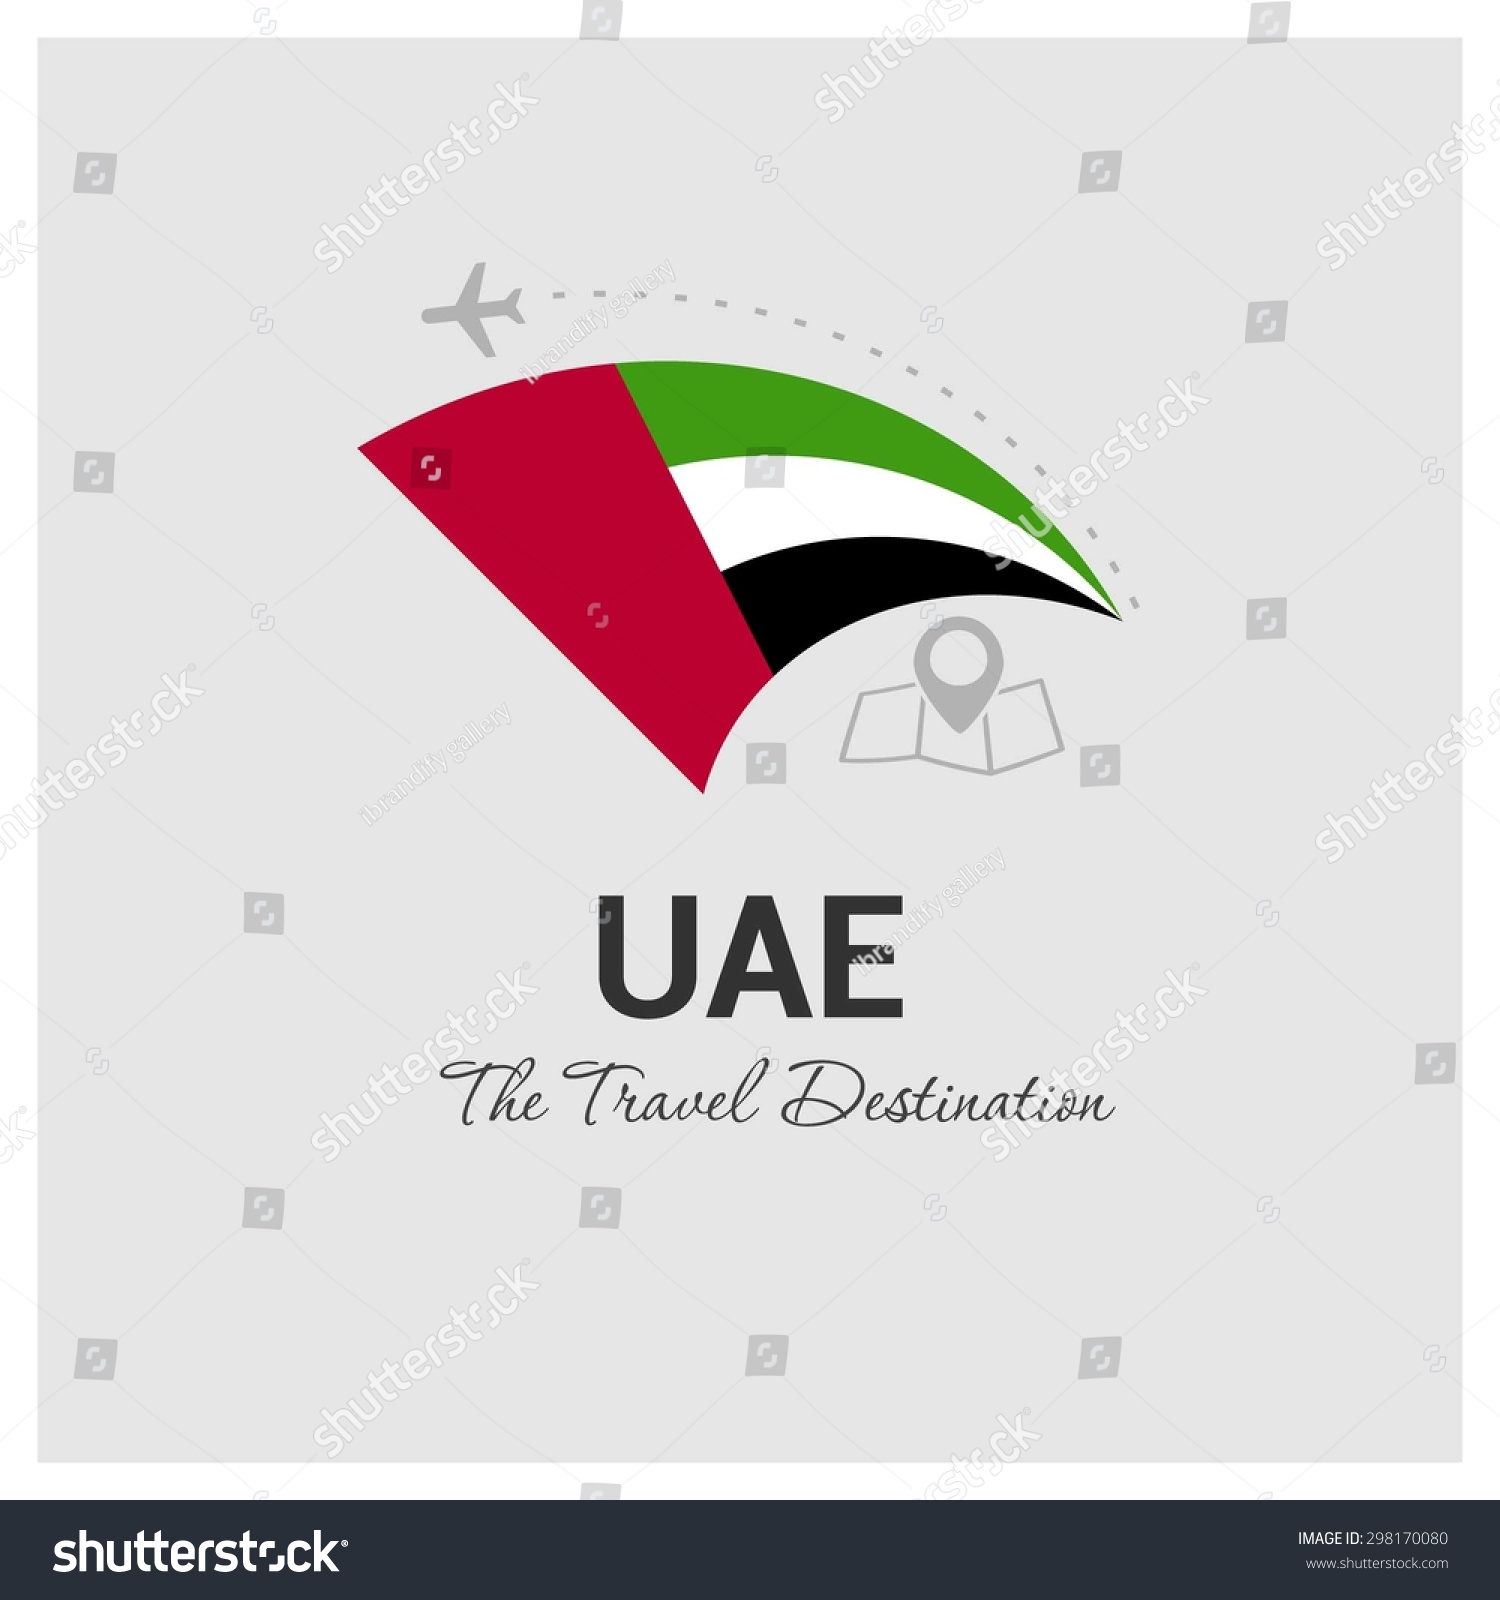 uae the travel destination logo vector travel company